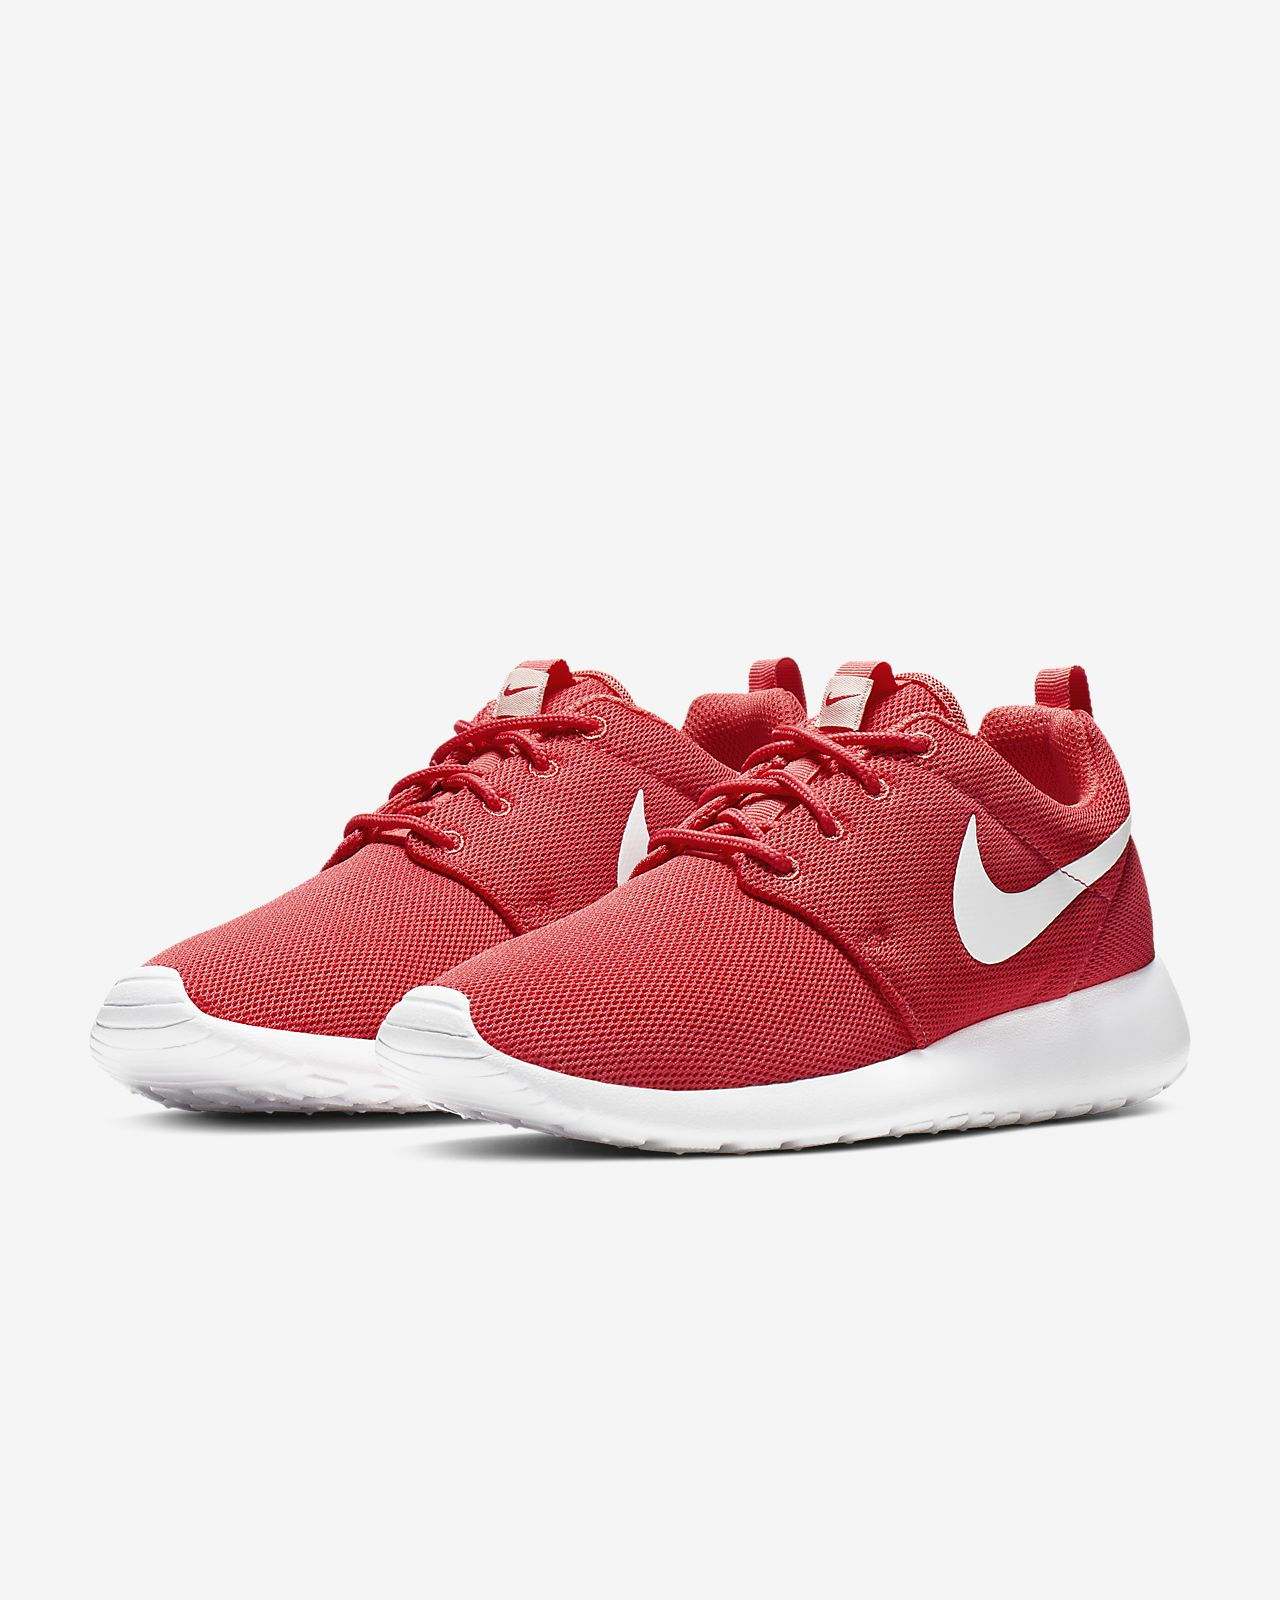 91335f0db232 Nike Roshe One Women s Shoe. Nike.com